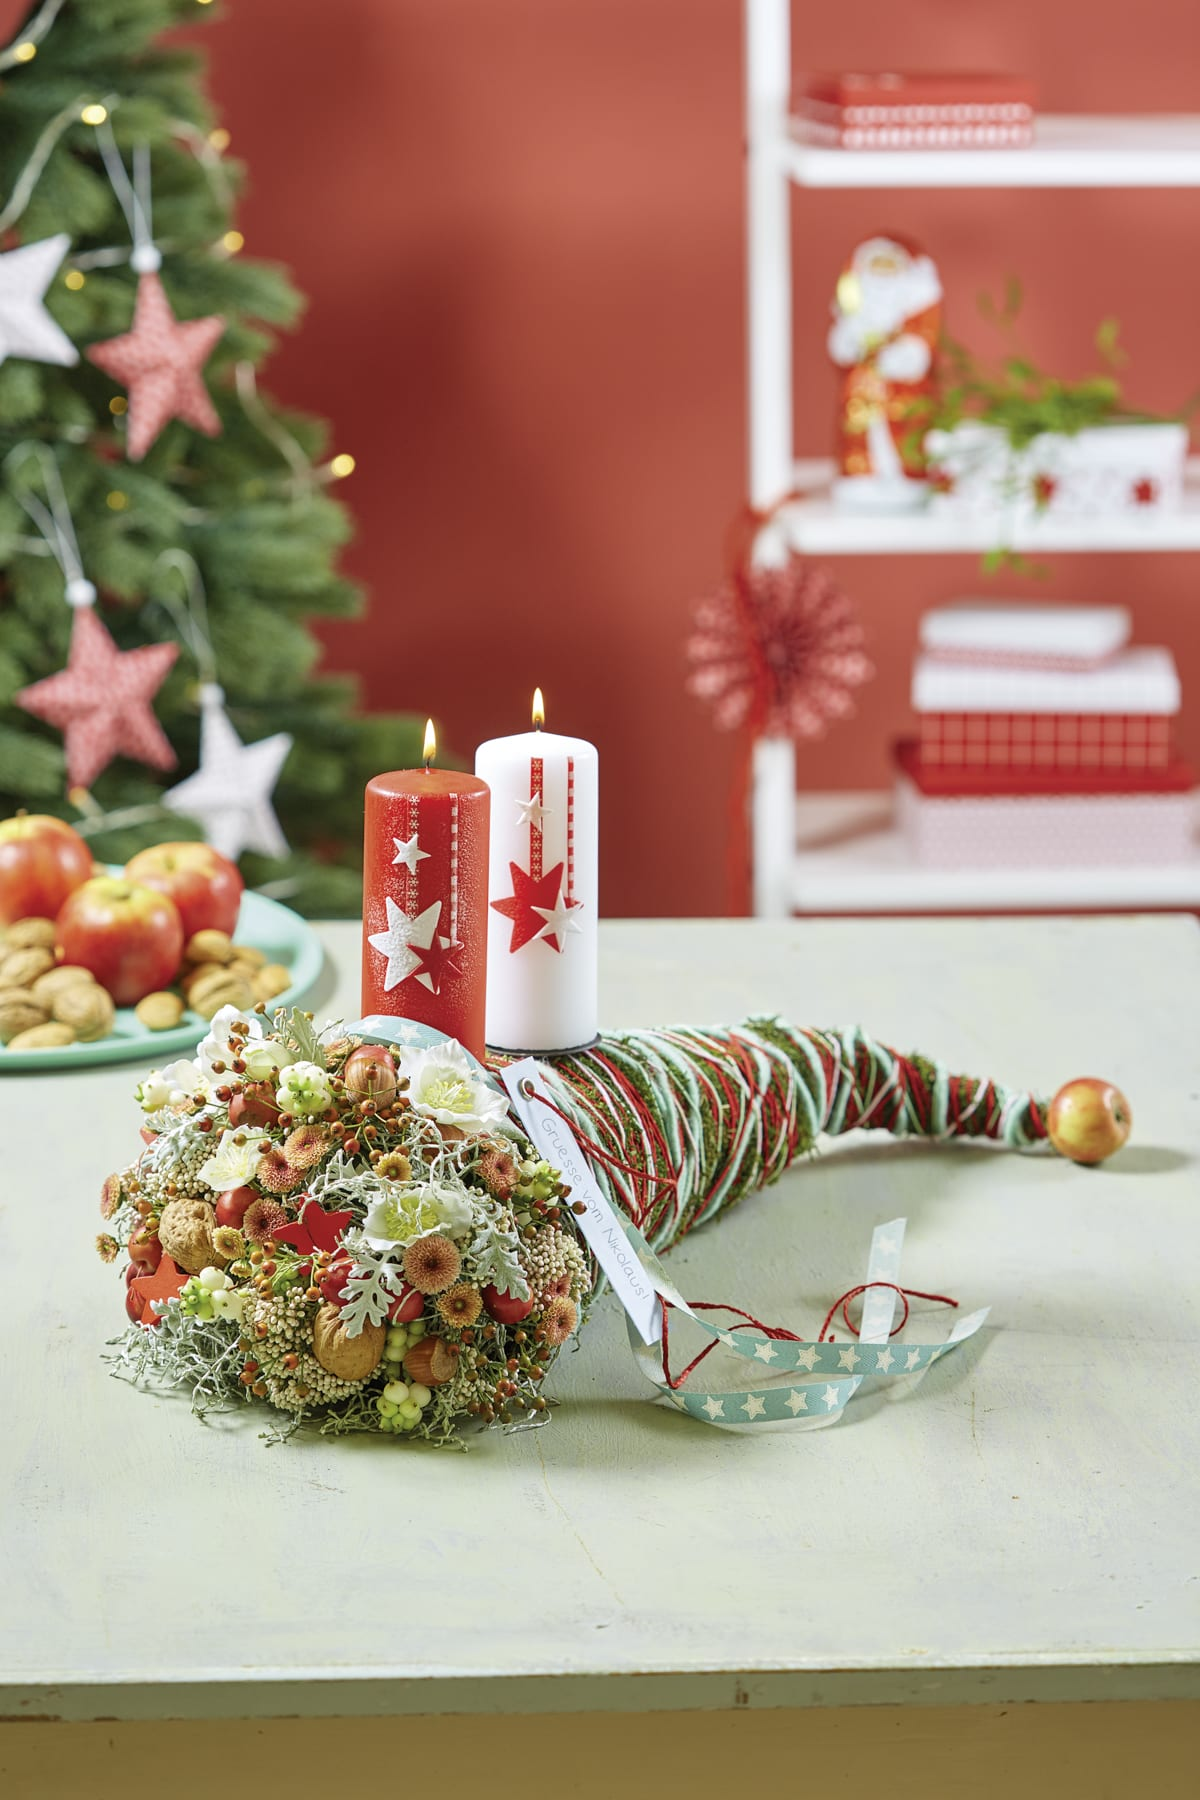 Floral Decoration for St. Nicholas' Day and Christmas